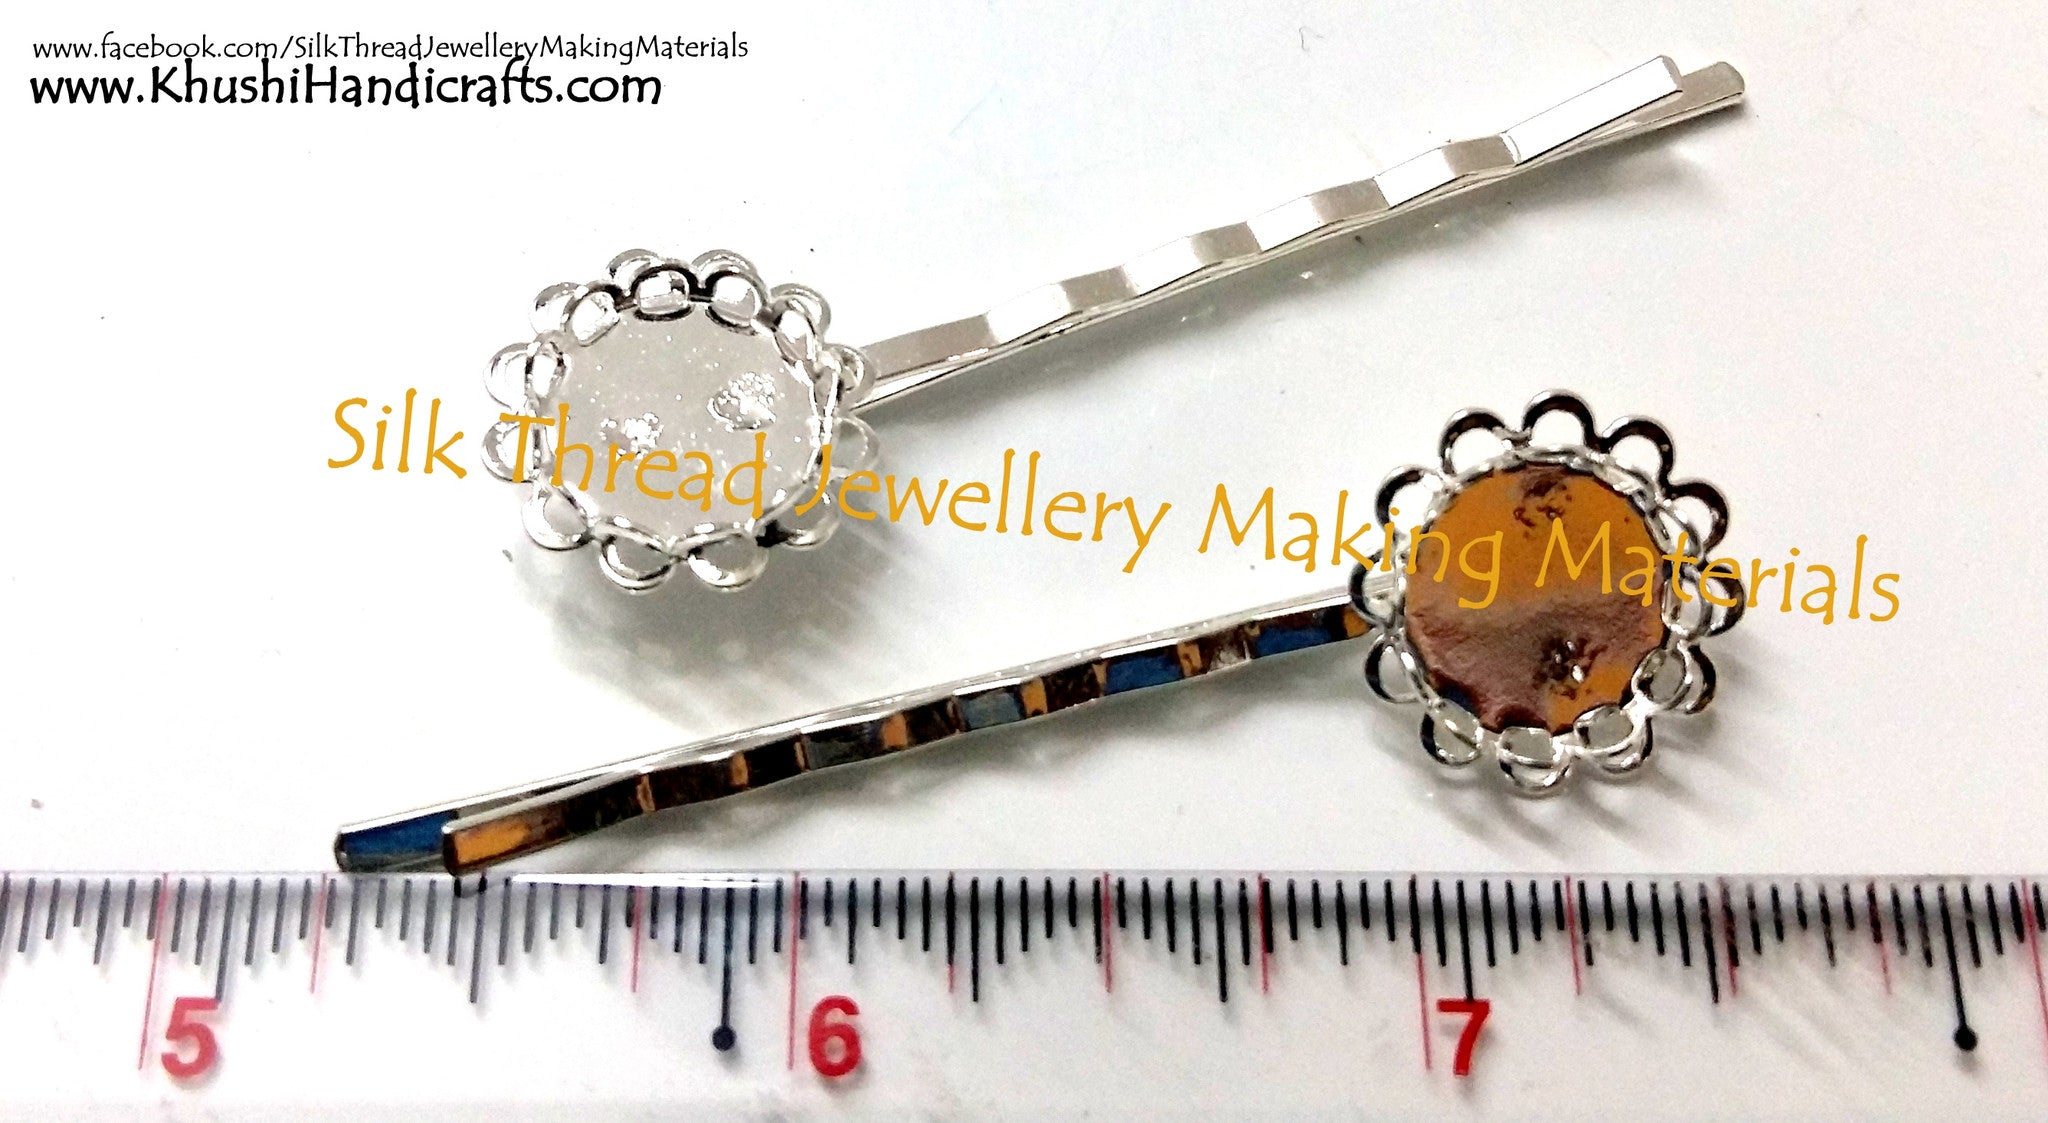 Antique Silver Cabochon Setting Hair Clips.Sold per pair! - Khushi Handmade Jewellery